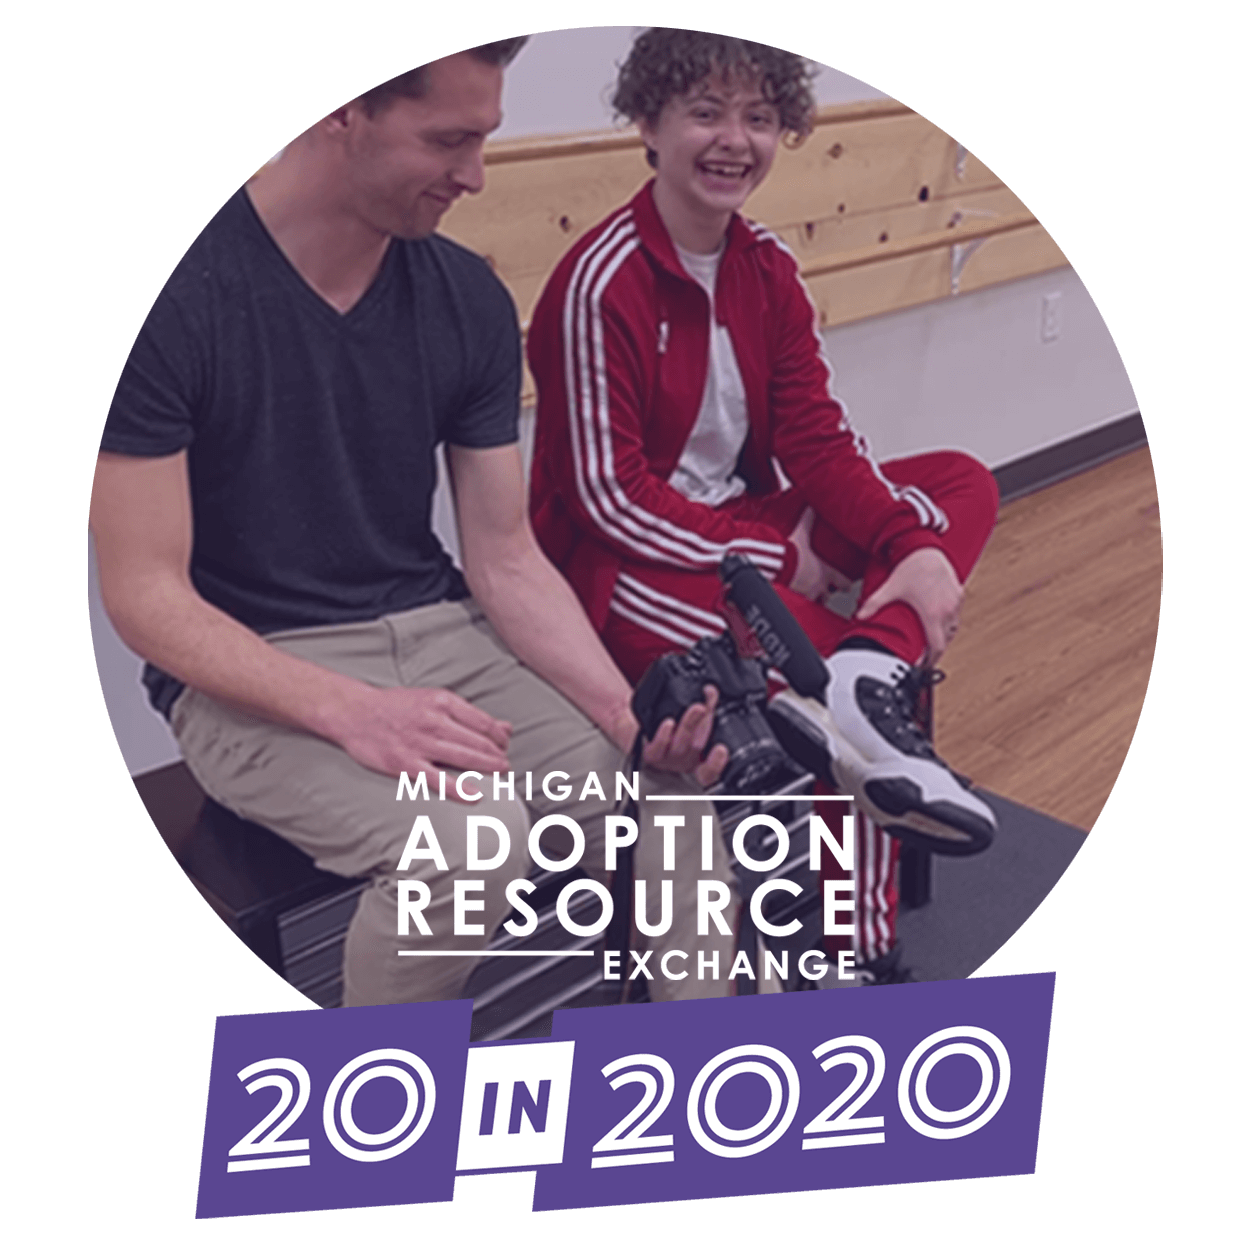 MARE 20 in 2020 logo and working with children photo